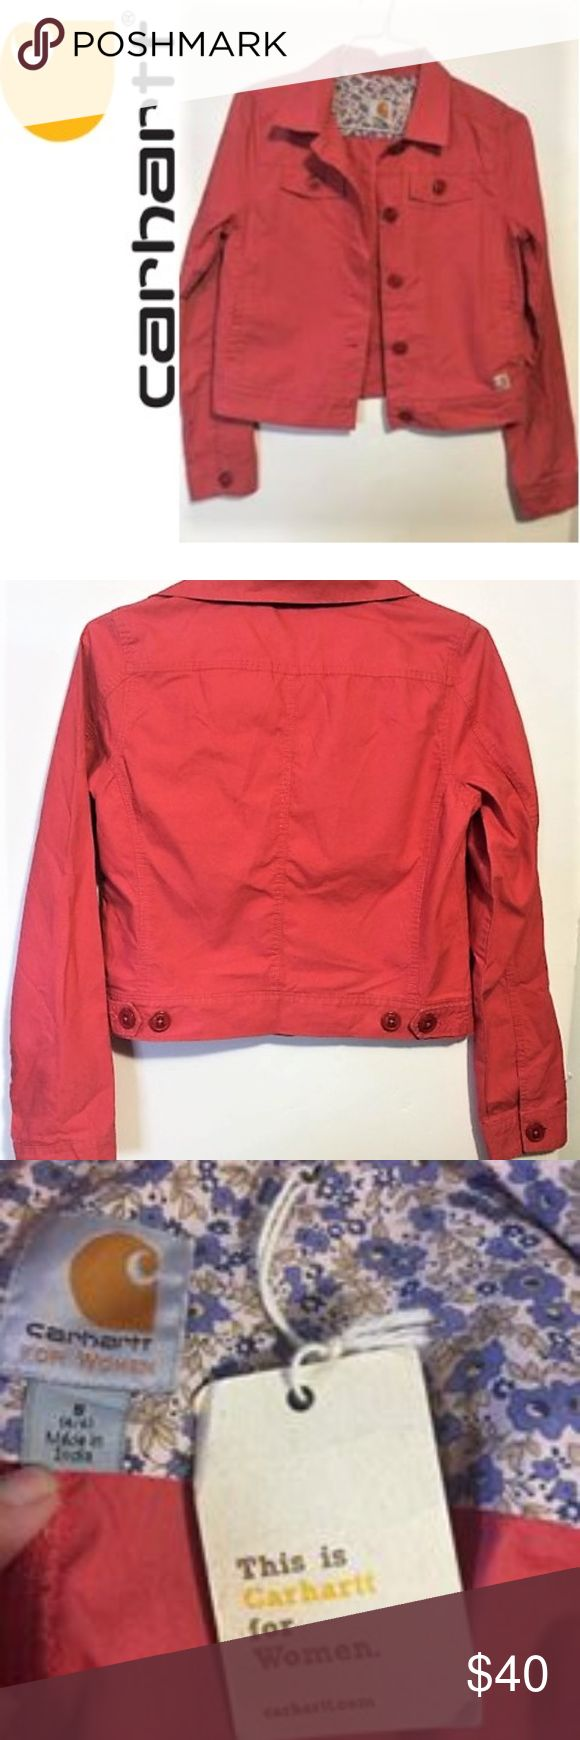 """💥SALE💥NWT Carhartt lightweight jacket SZ small NWT Carhartt lightweight jacket in a size small.  Dark coral in color.  featuring four outside pockets and two inside pockets.1.  19"""" pit to pit.  20"""" in length. 100% Cotton. Carhartt Jackets & Coats Jean Jackets"""